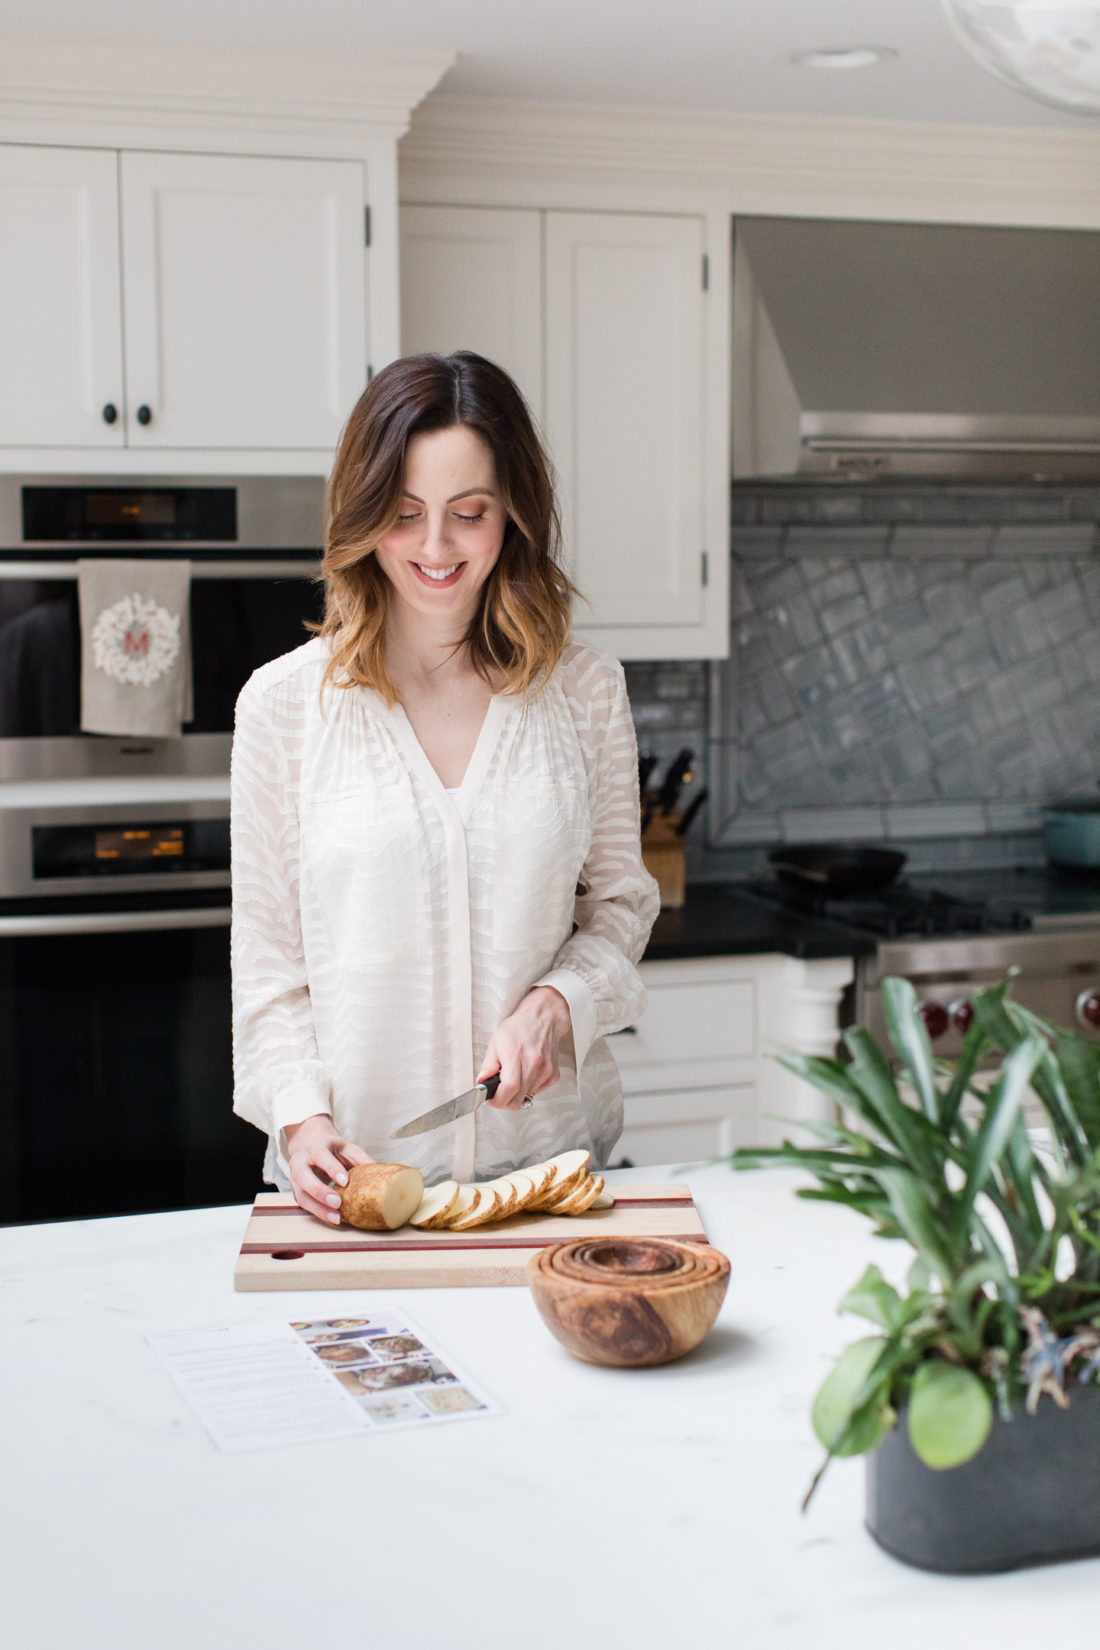 Eva Amurri Martino slices rounds of potatoes in her kitchen